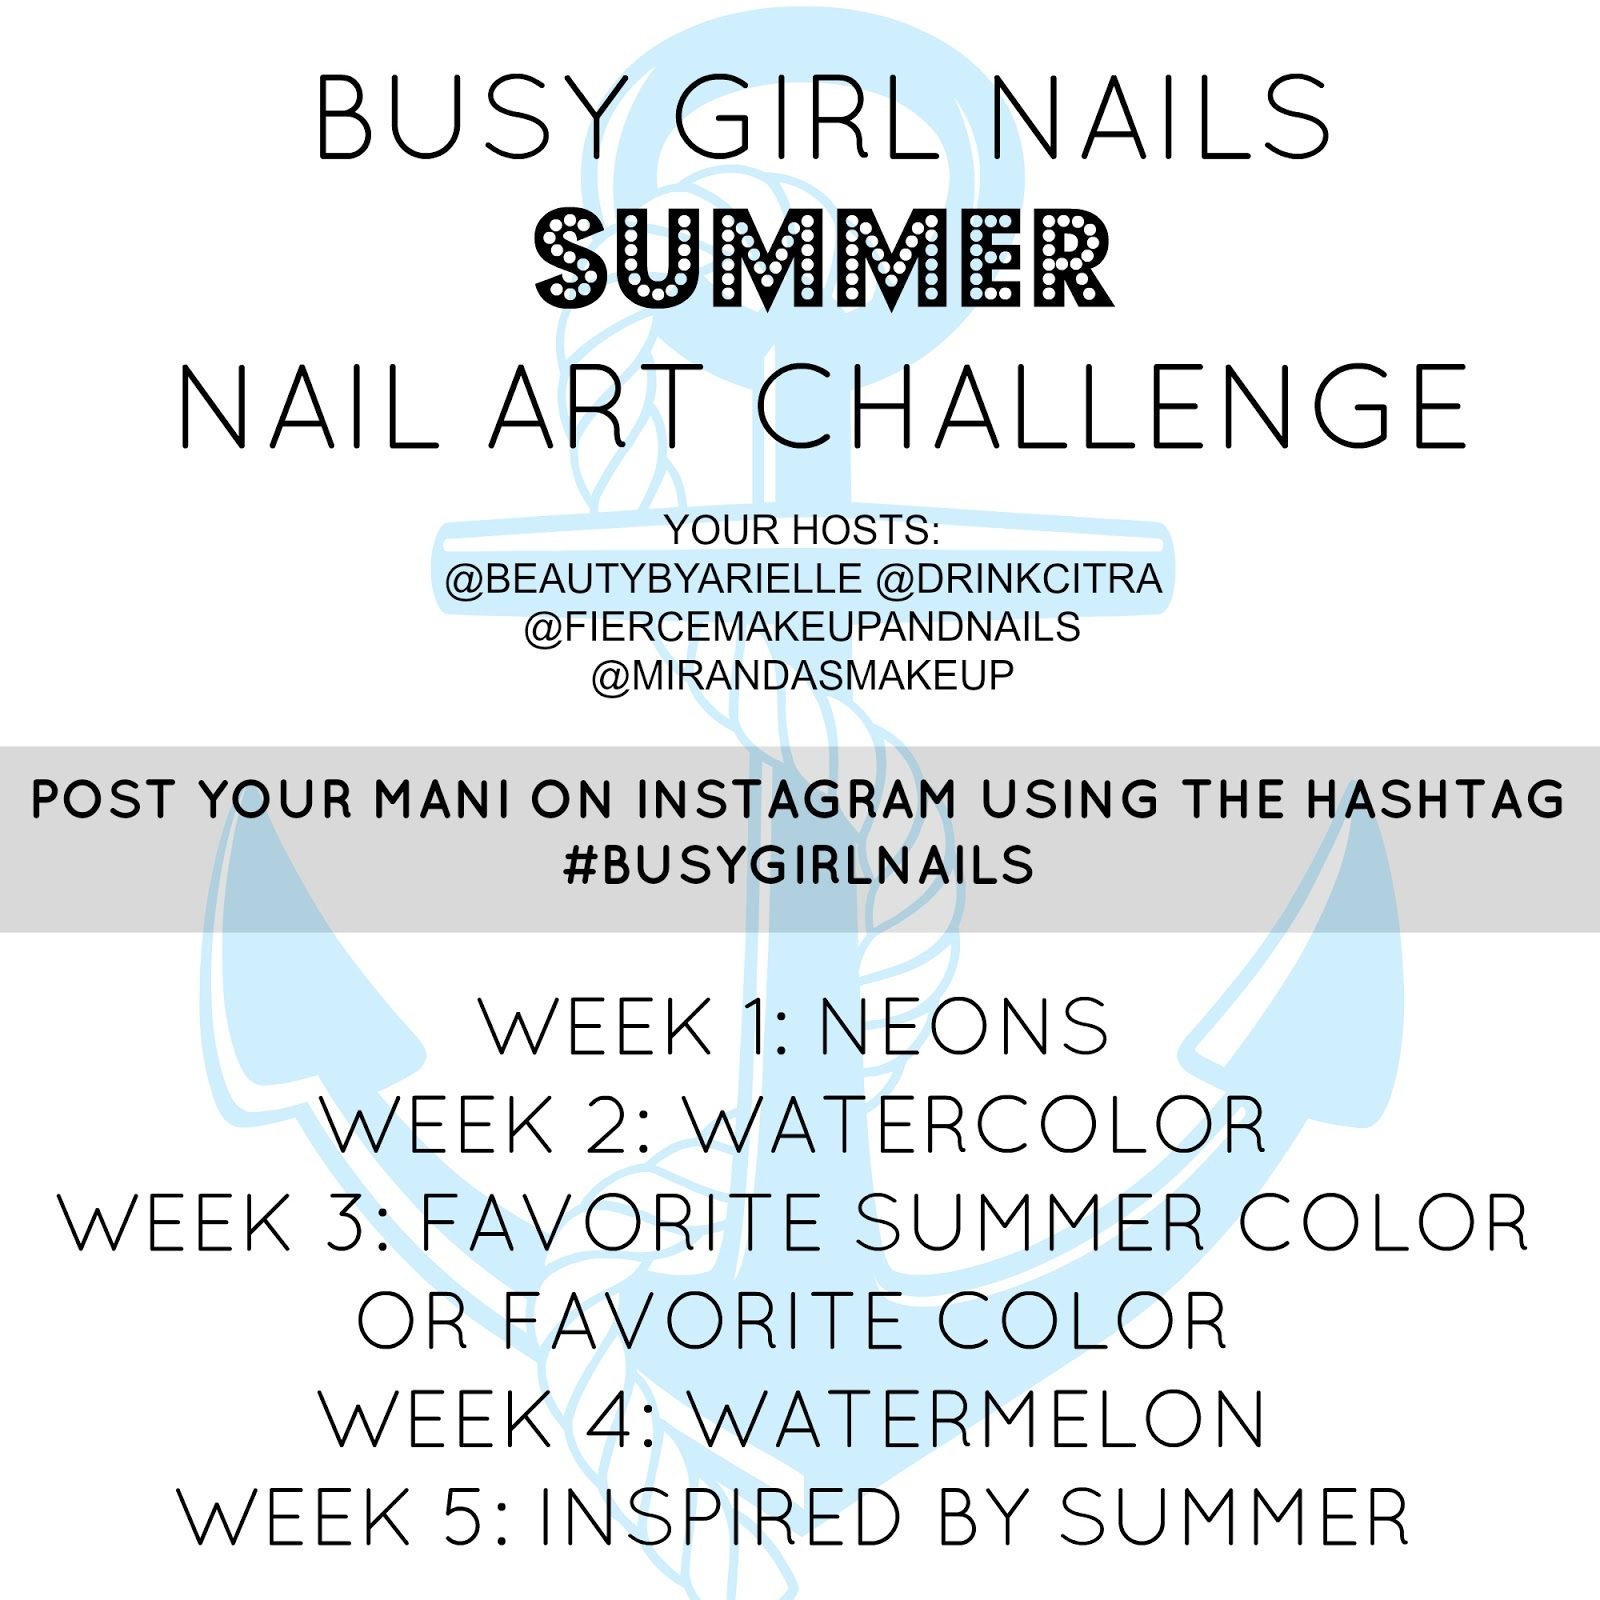 Busy Girl Nails summer 2014